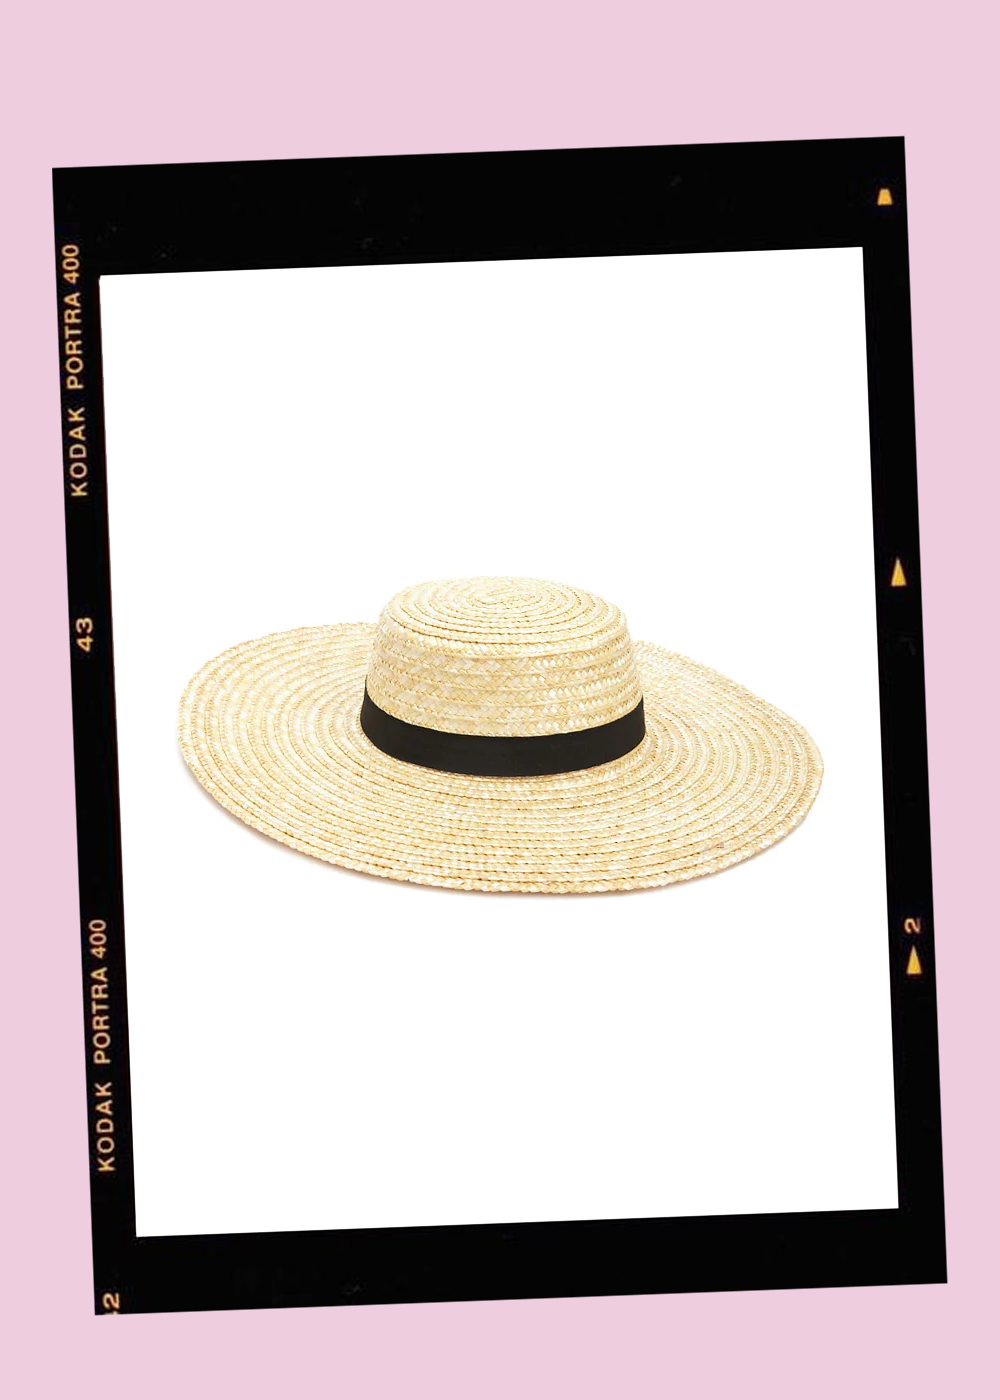 007. - Straw Hat // $20Forever 21